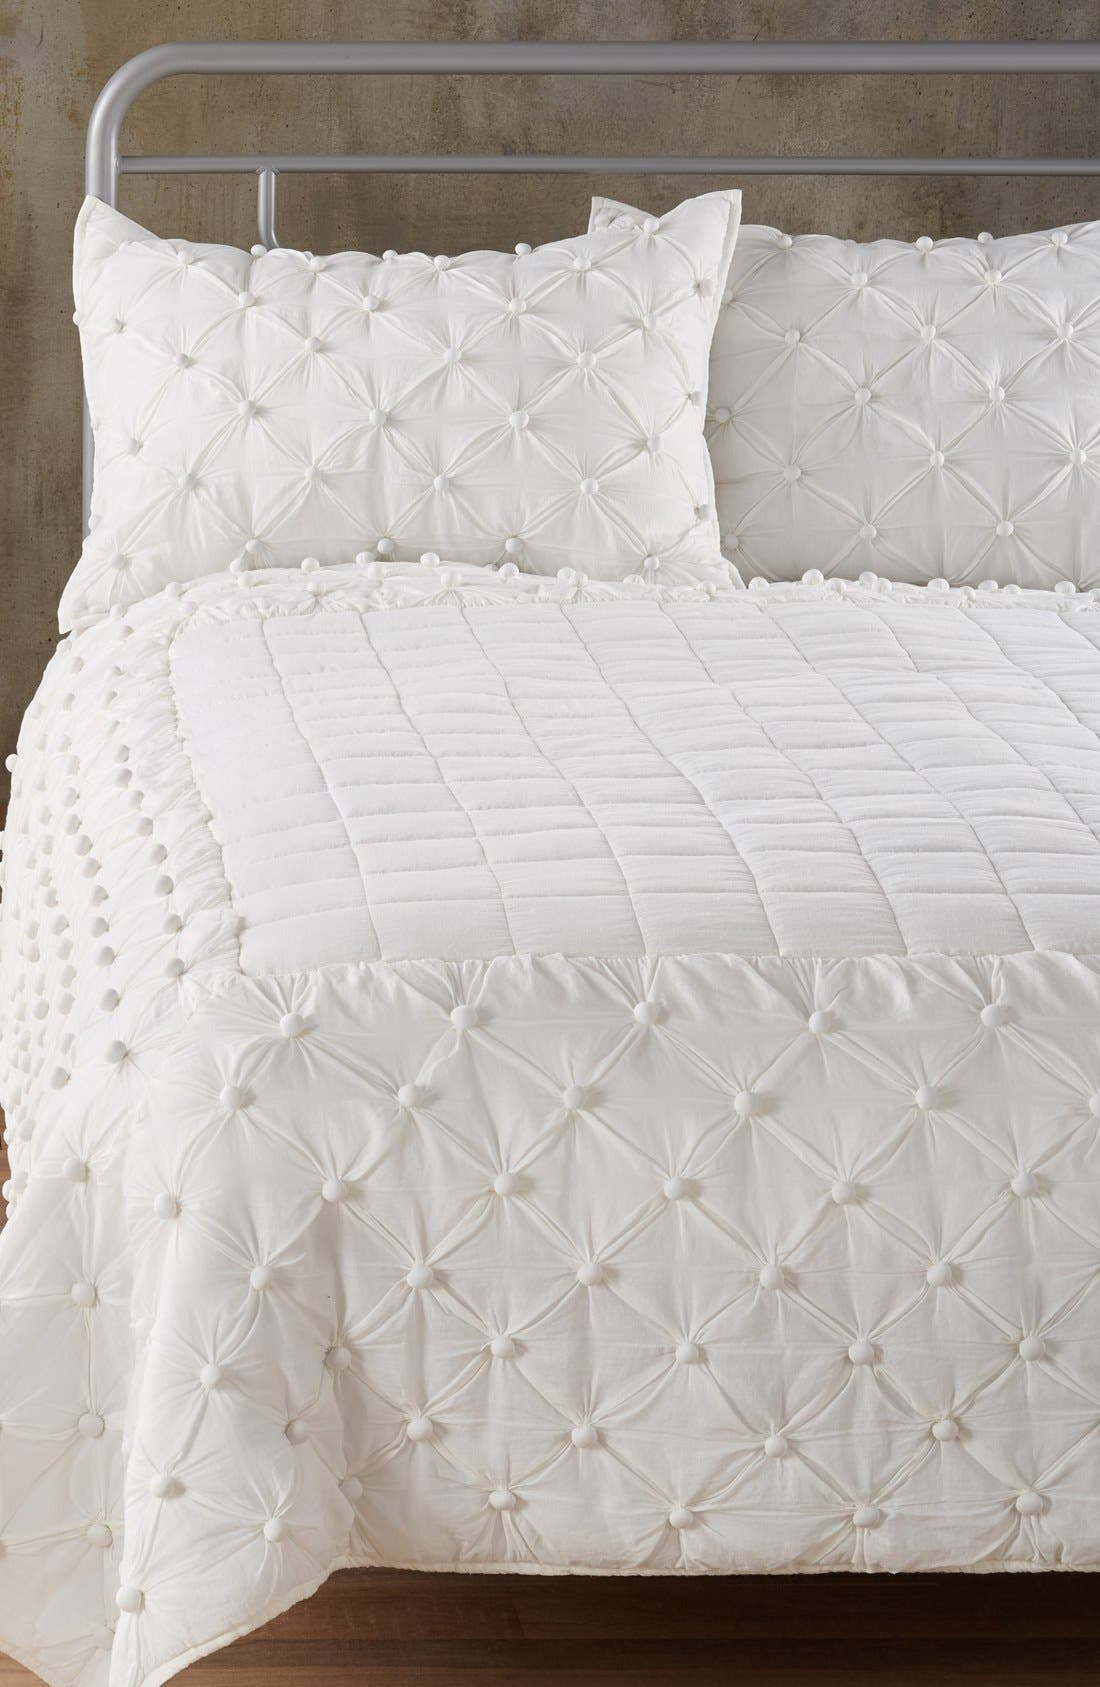 Nordstrom at Home 'Chelsea' Comforter